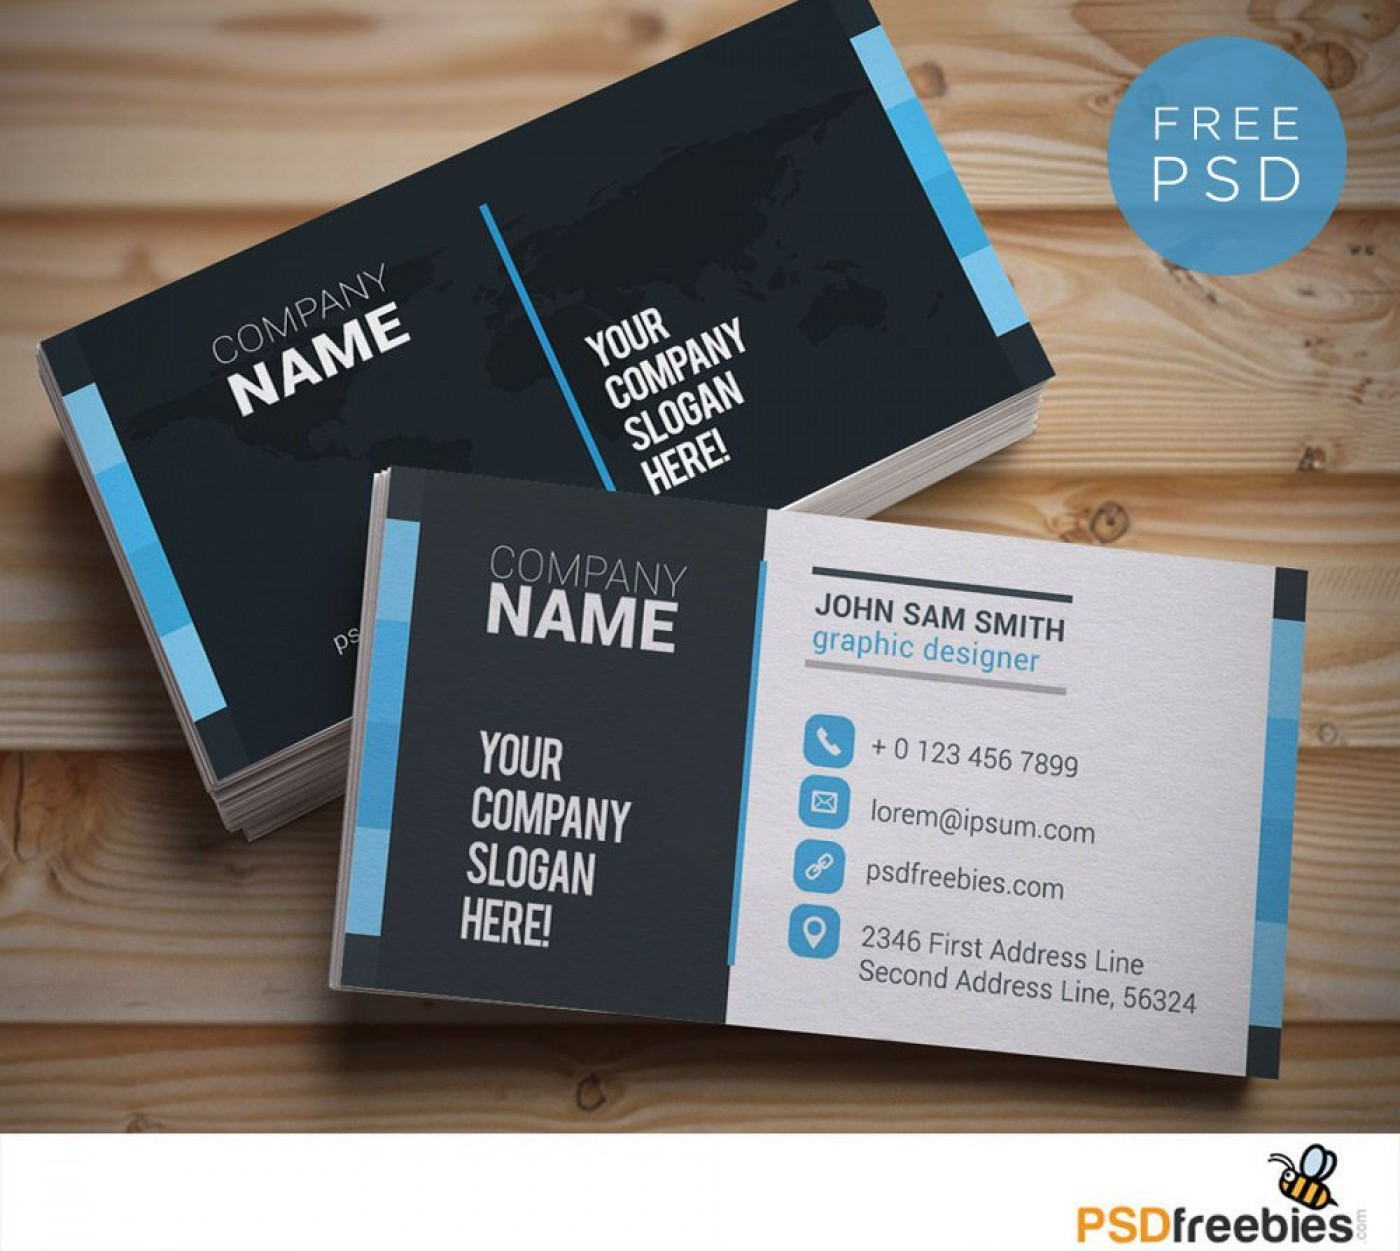 004 Stupendou Download Busines Card Template Highest Quality  For Microsoft Publisher Adobe Illustrator Visiting Psd1400